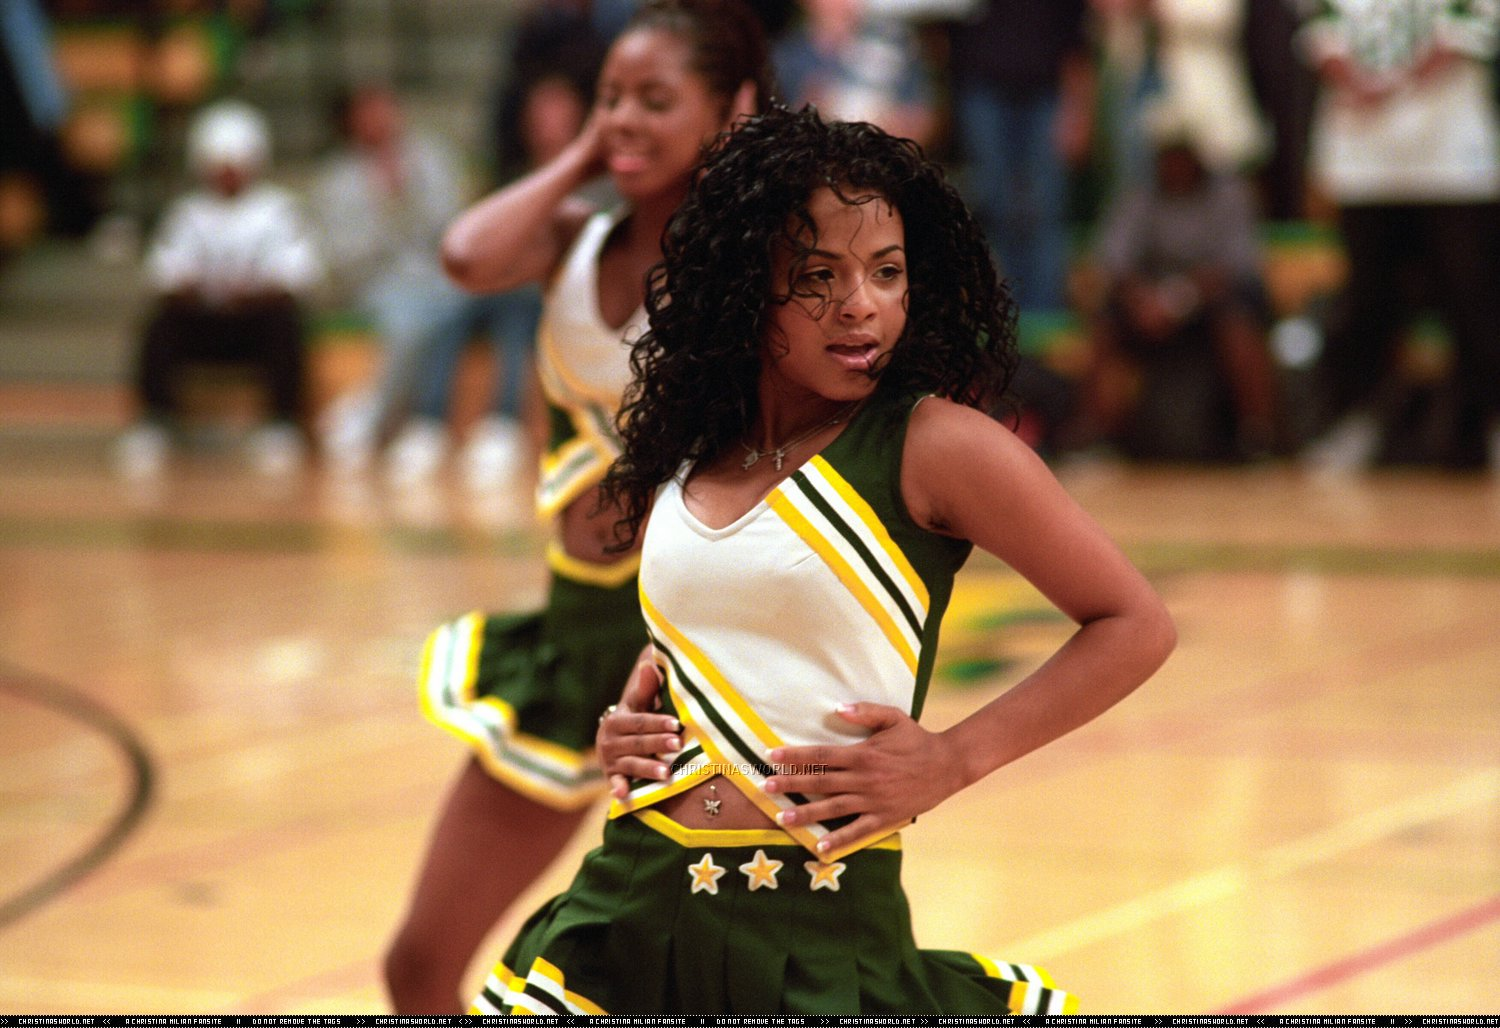 Cheerleaders in Movies and TV shows: Christina Milian in ...